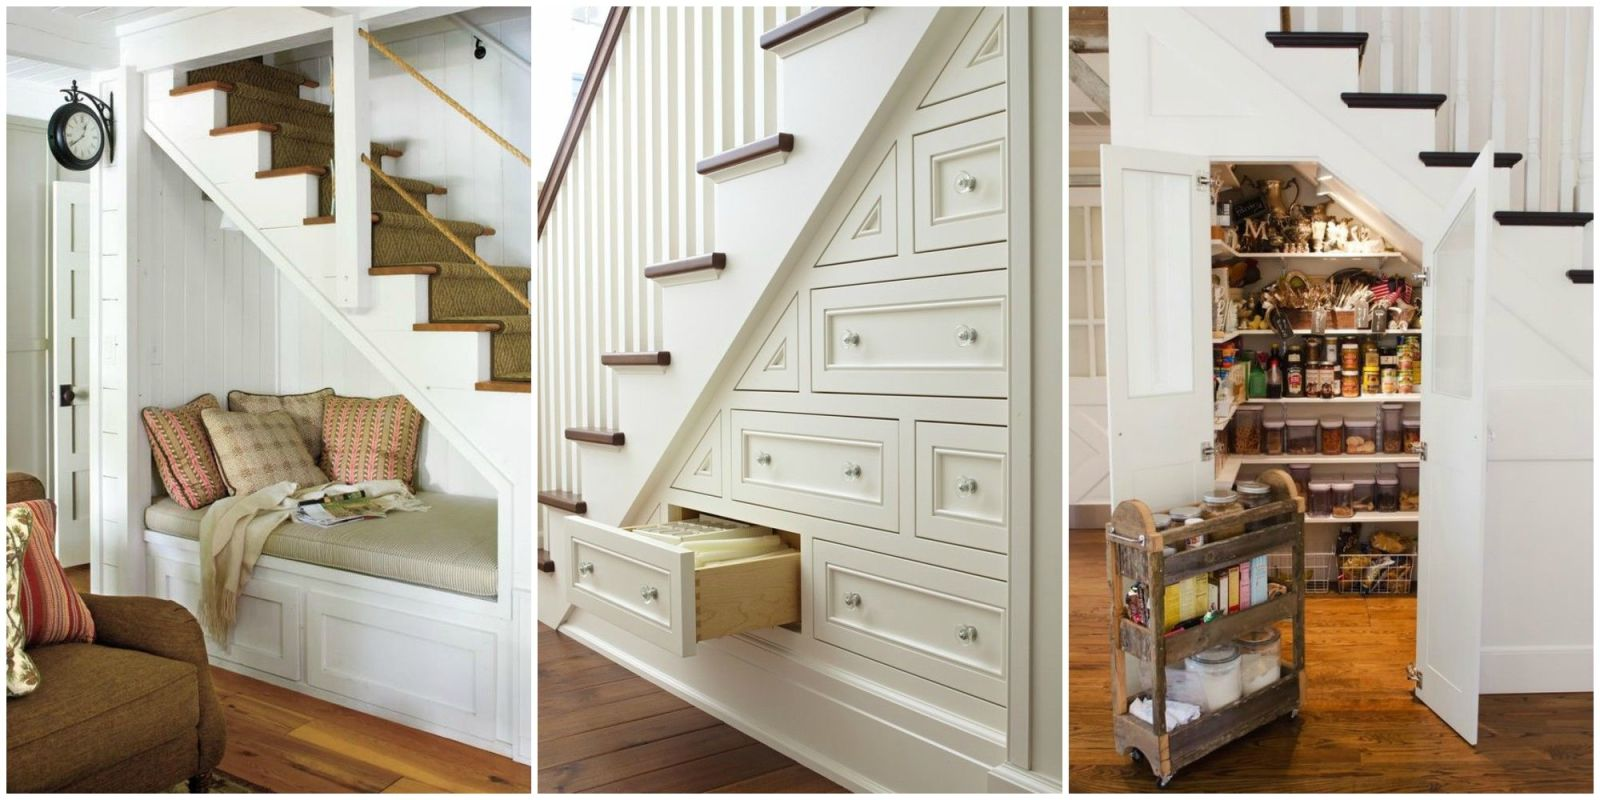 Design Under Stair Ideas 15 genius under stairs storage ideas what to do with empty space stairs